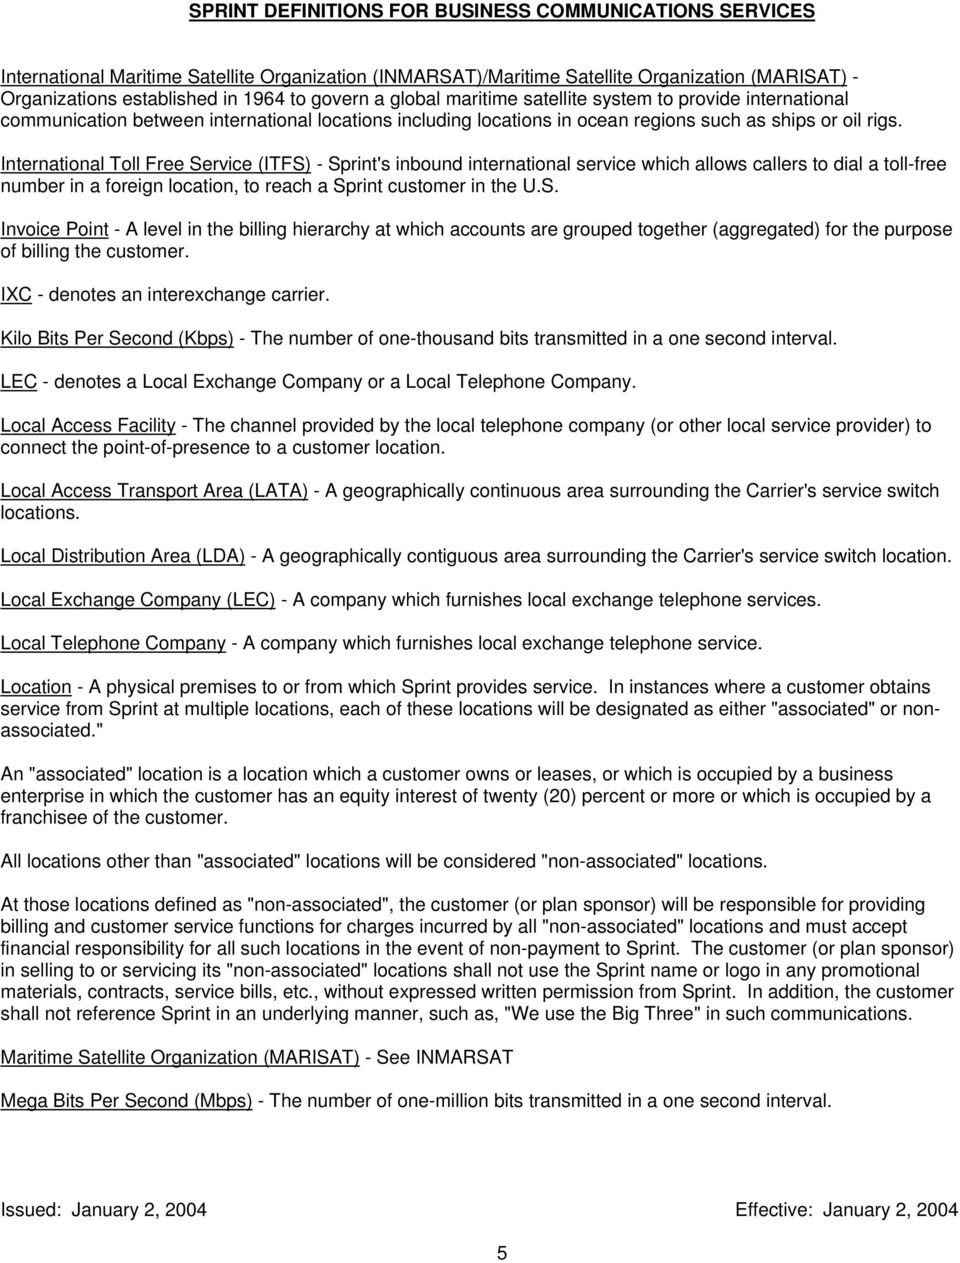 SPRINT DEFINITIONS FOR BUSINESS COMMUNICATIONS SERVICES  Access